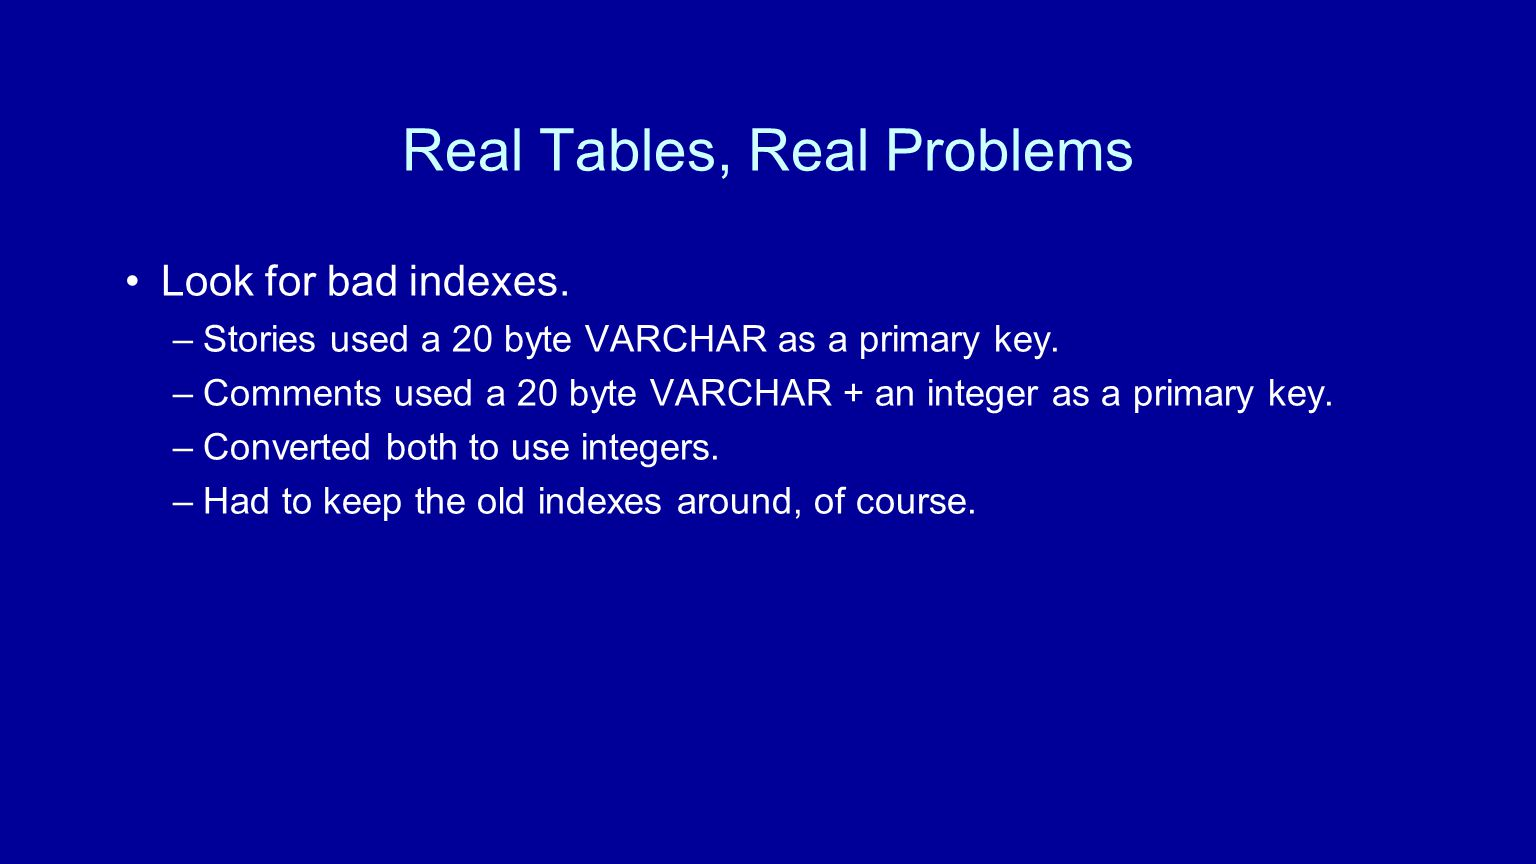 Look for bad indexes. –Stories used a 20 byte VARCHAR as a primary key.